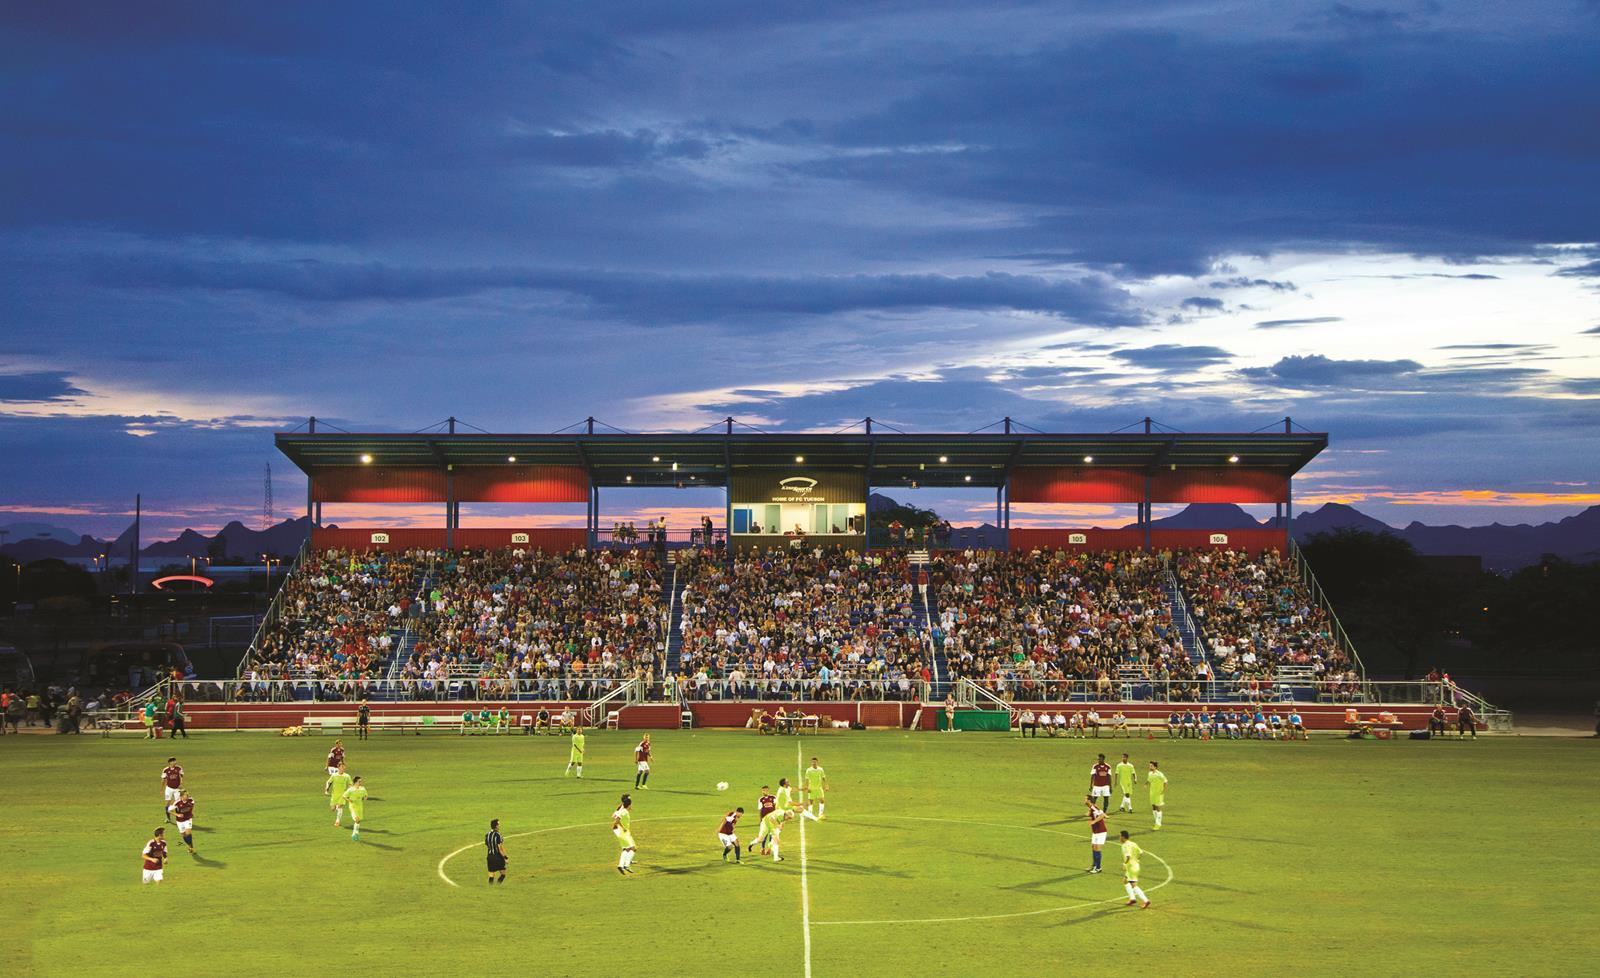 Photo of the North Complex Stadium taken during a FC Tucson soccer game held at the Kino Sports Complex on July 4, 2014.